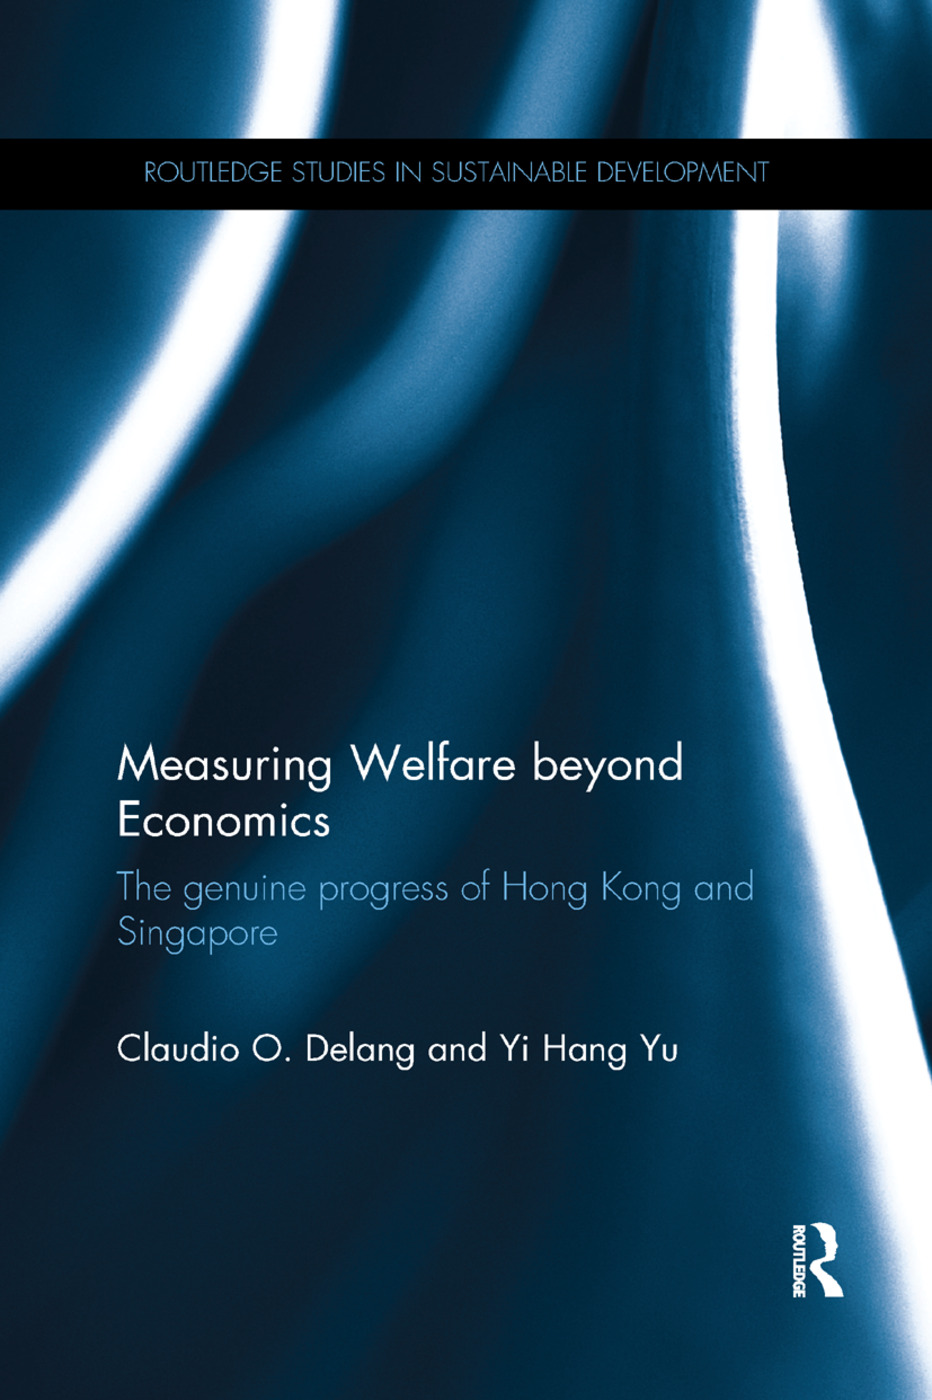 Measuring Welfare beyond Economics: The genuine progress of Hong Kong and Singapore book cover